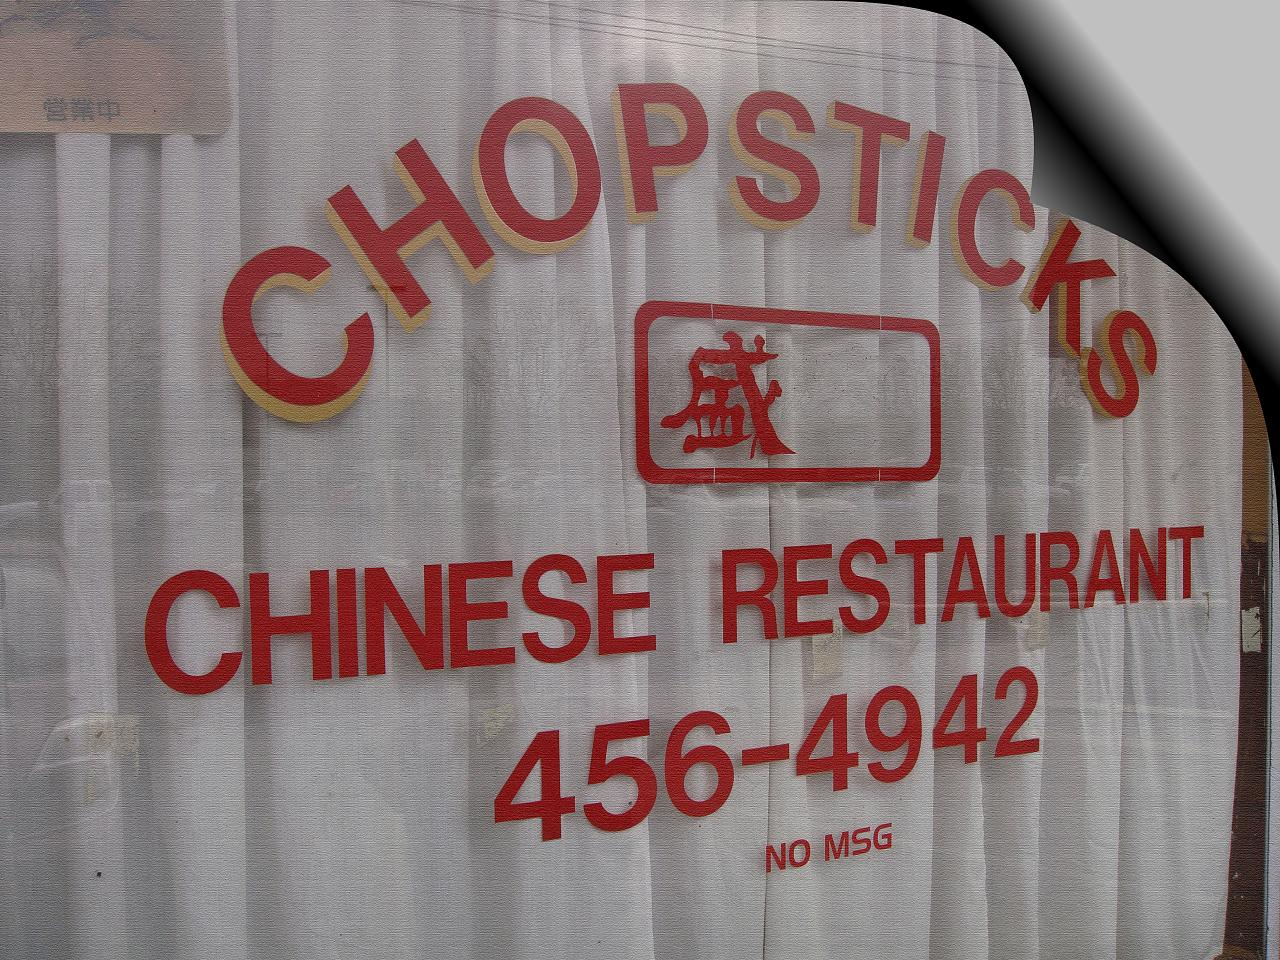 Chopsticks closed